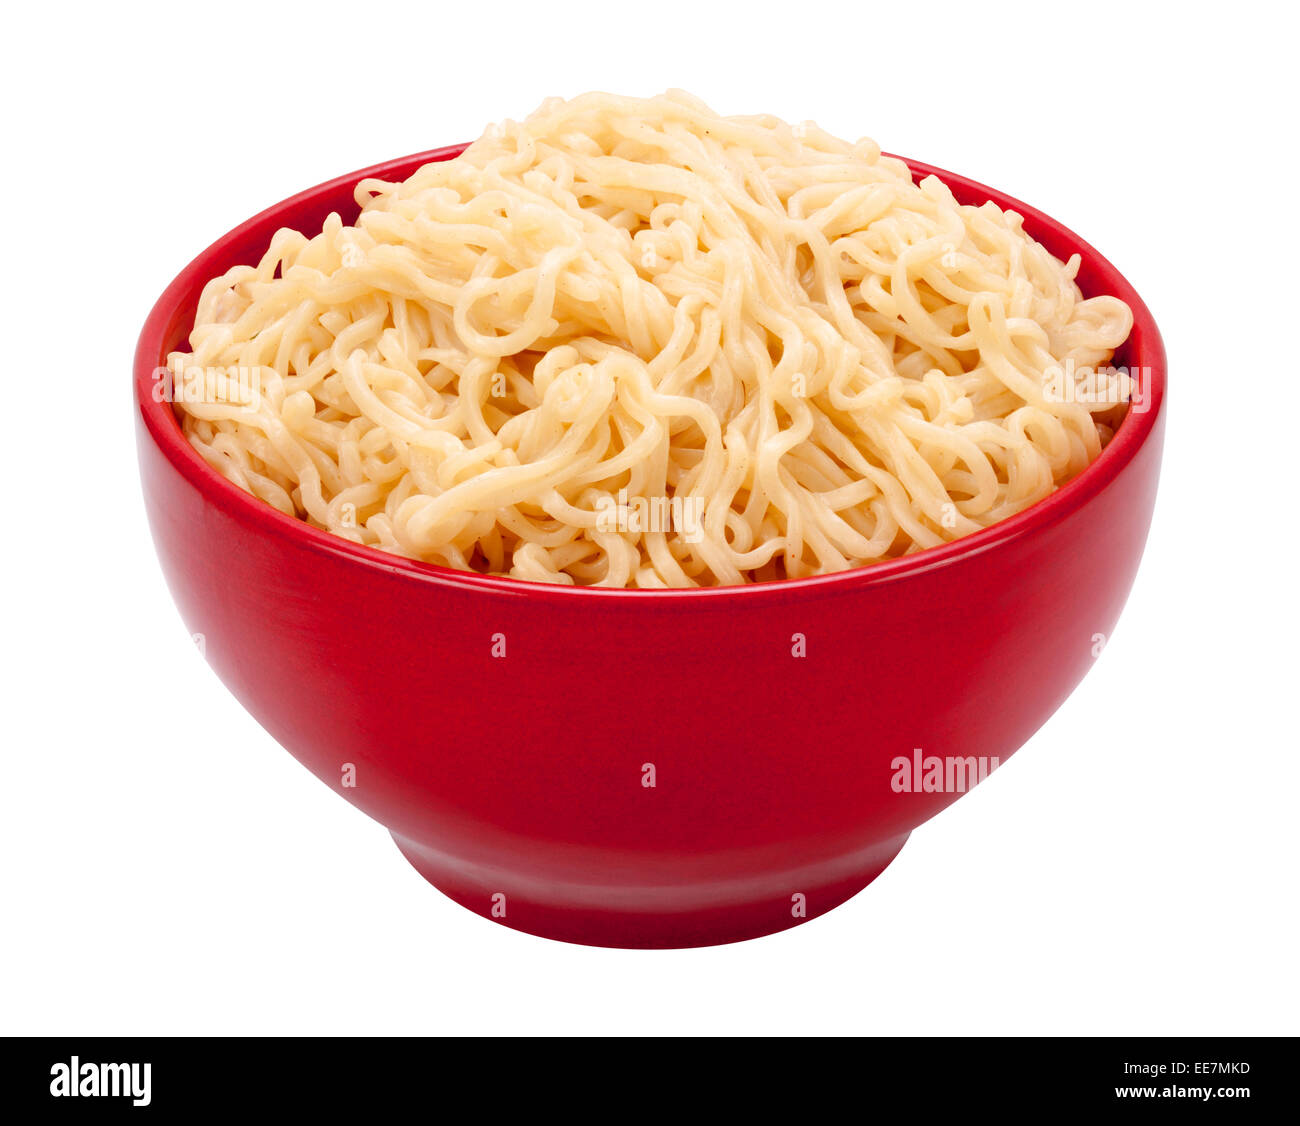 Ramen Noodles in a Red Bowl. Isolated on white, the image is in full focus, front to back. - Stock Image